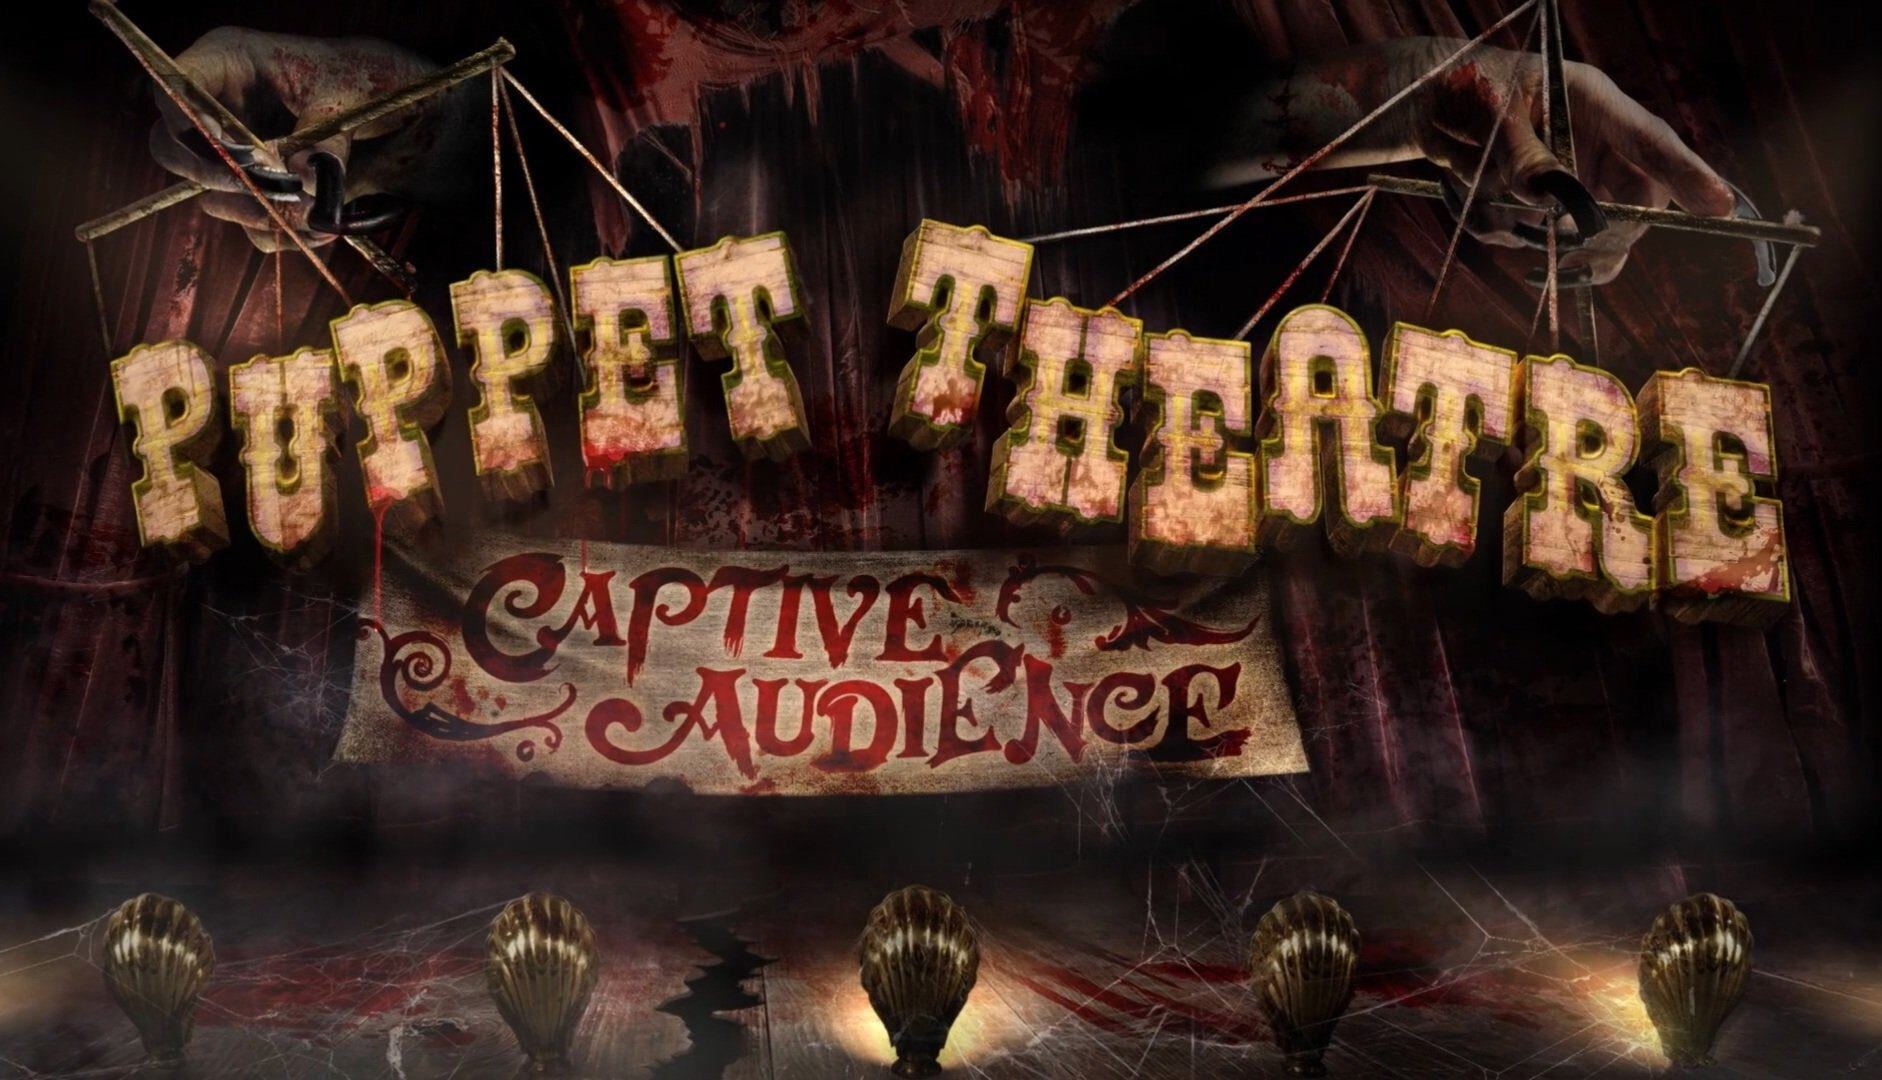 Puppet Theatre: Captive Audience concept art - Halloween Horror Nights 2021